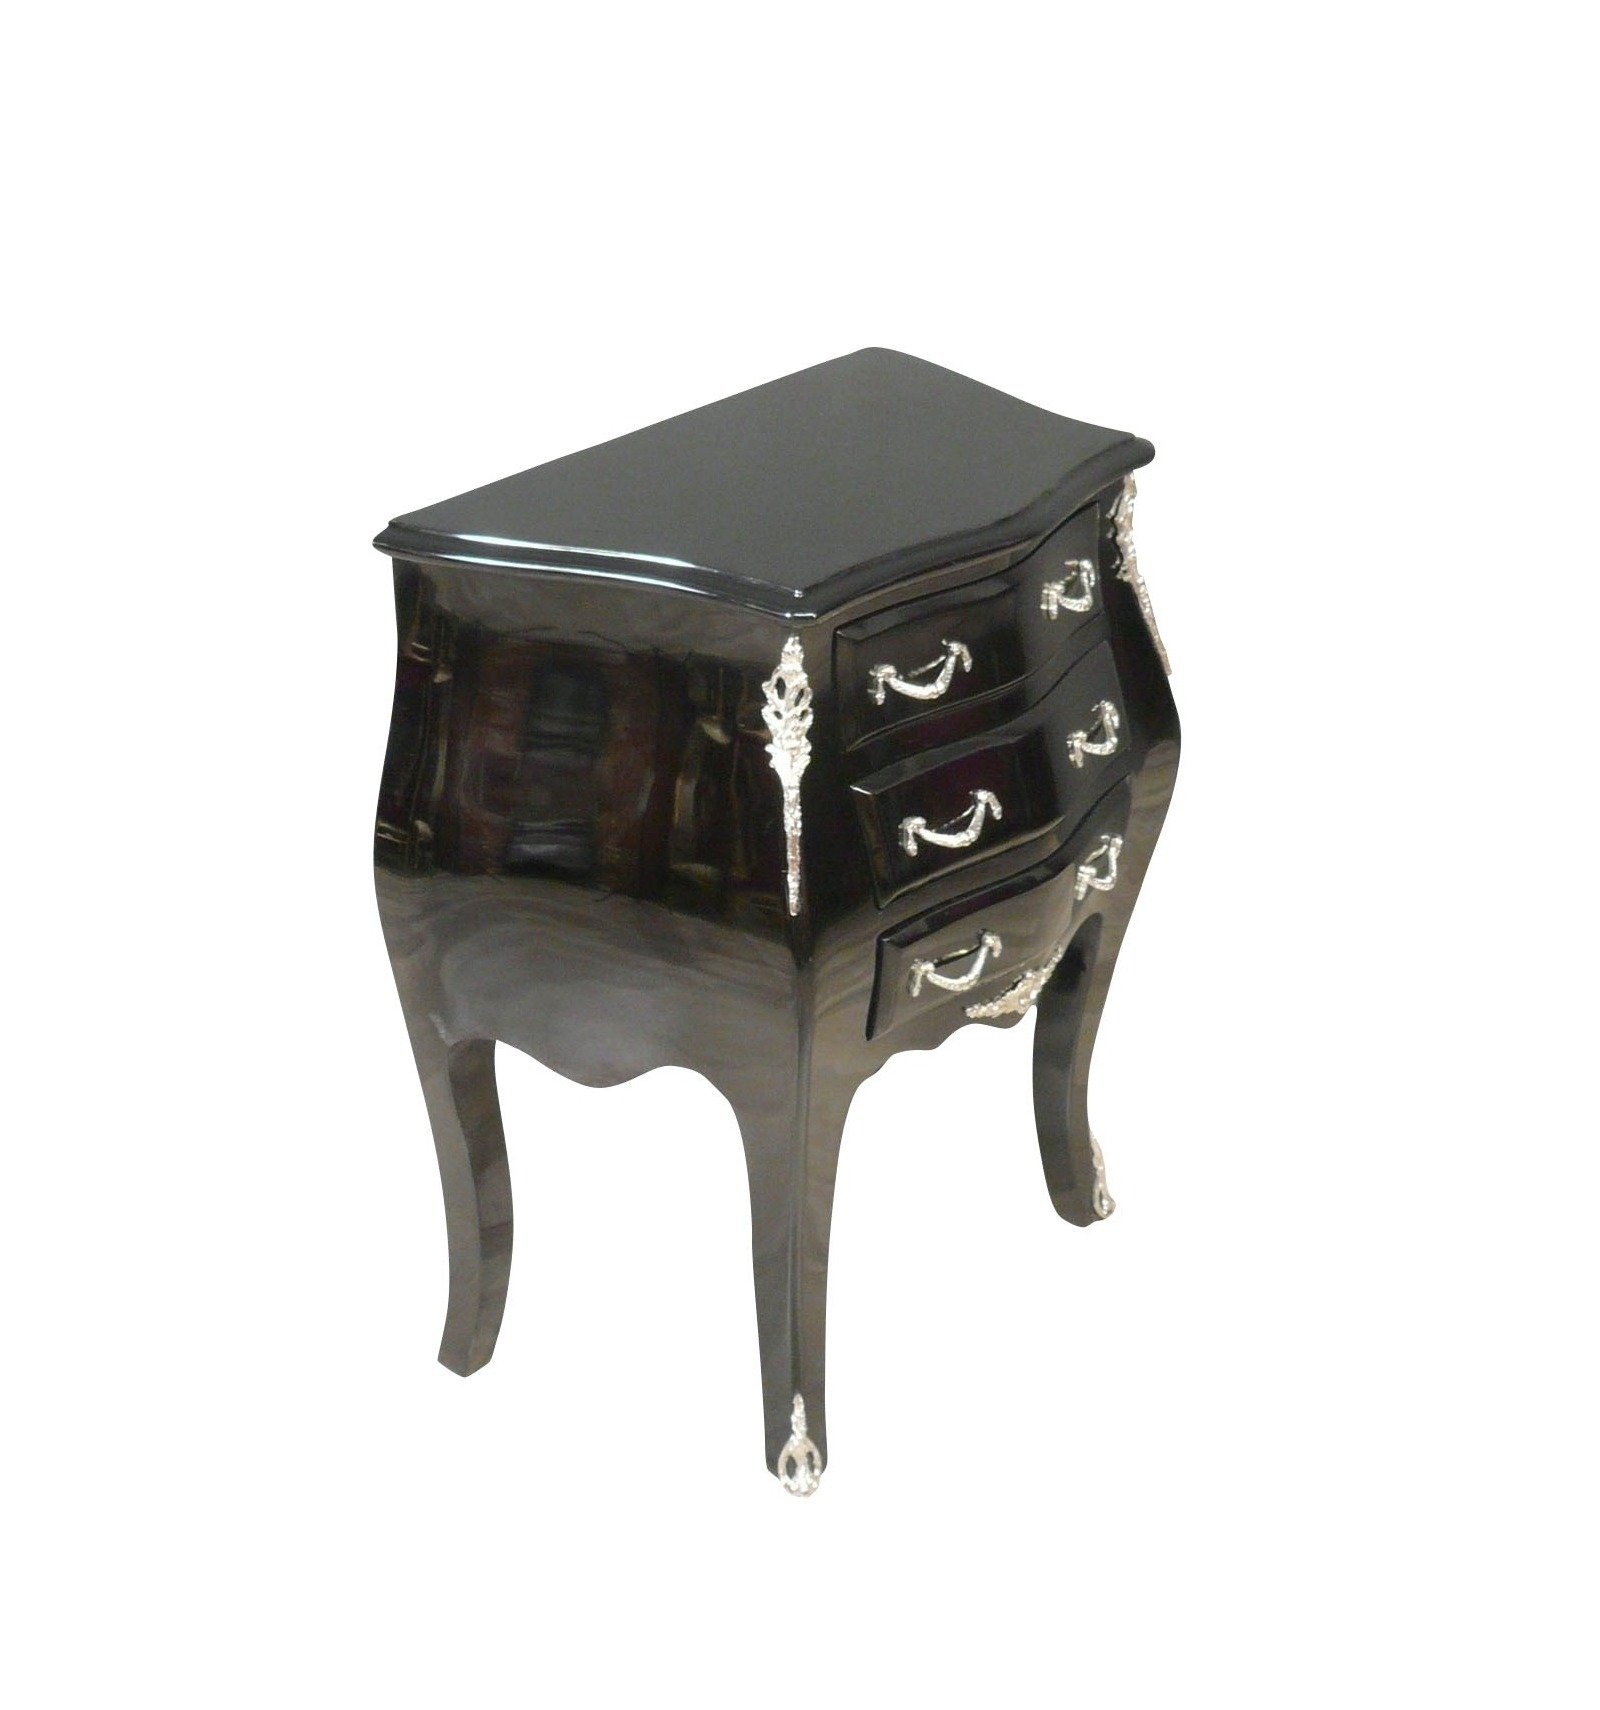 commode baroque noire de style louis xv meubles baroques. Black Bedroom Furniture Sets. Home Design Ideas